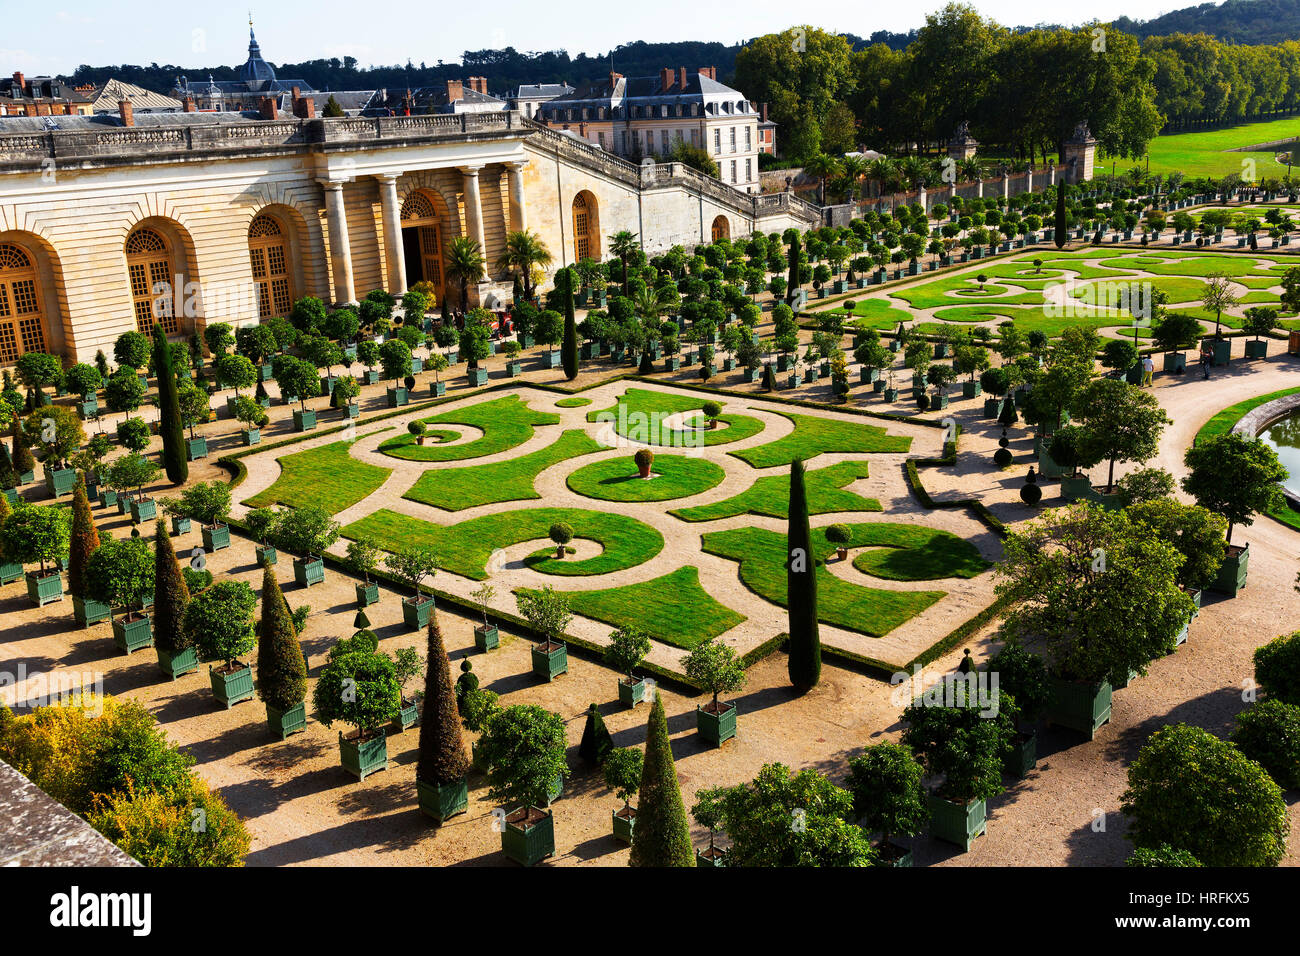 Gardens of the Palace of Versailles, France - Stock Image